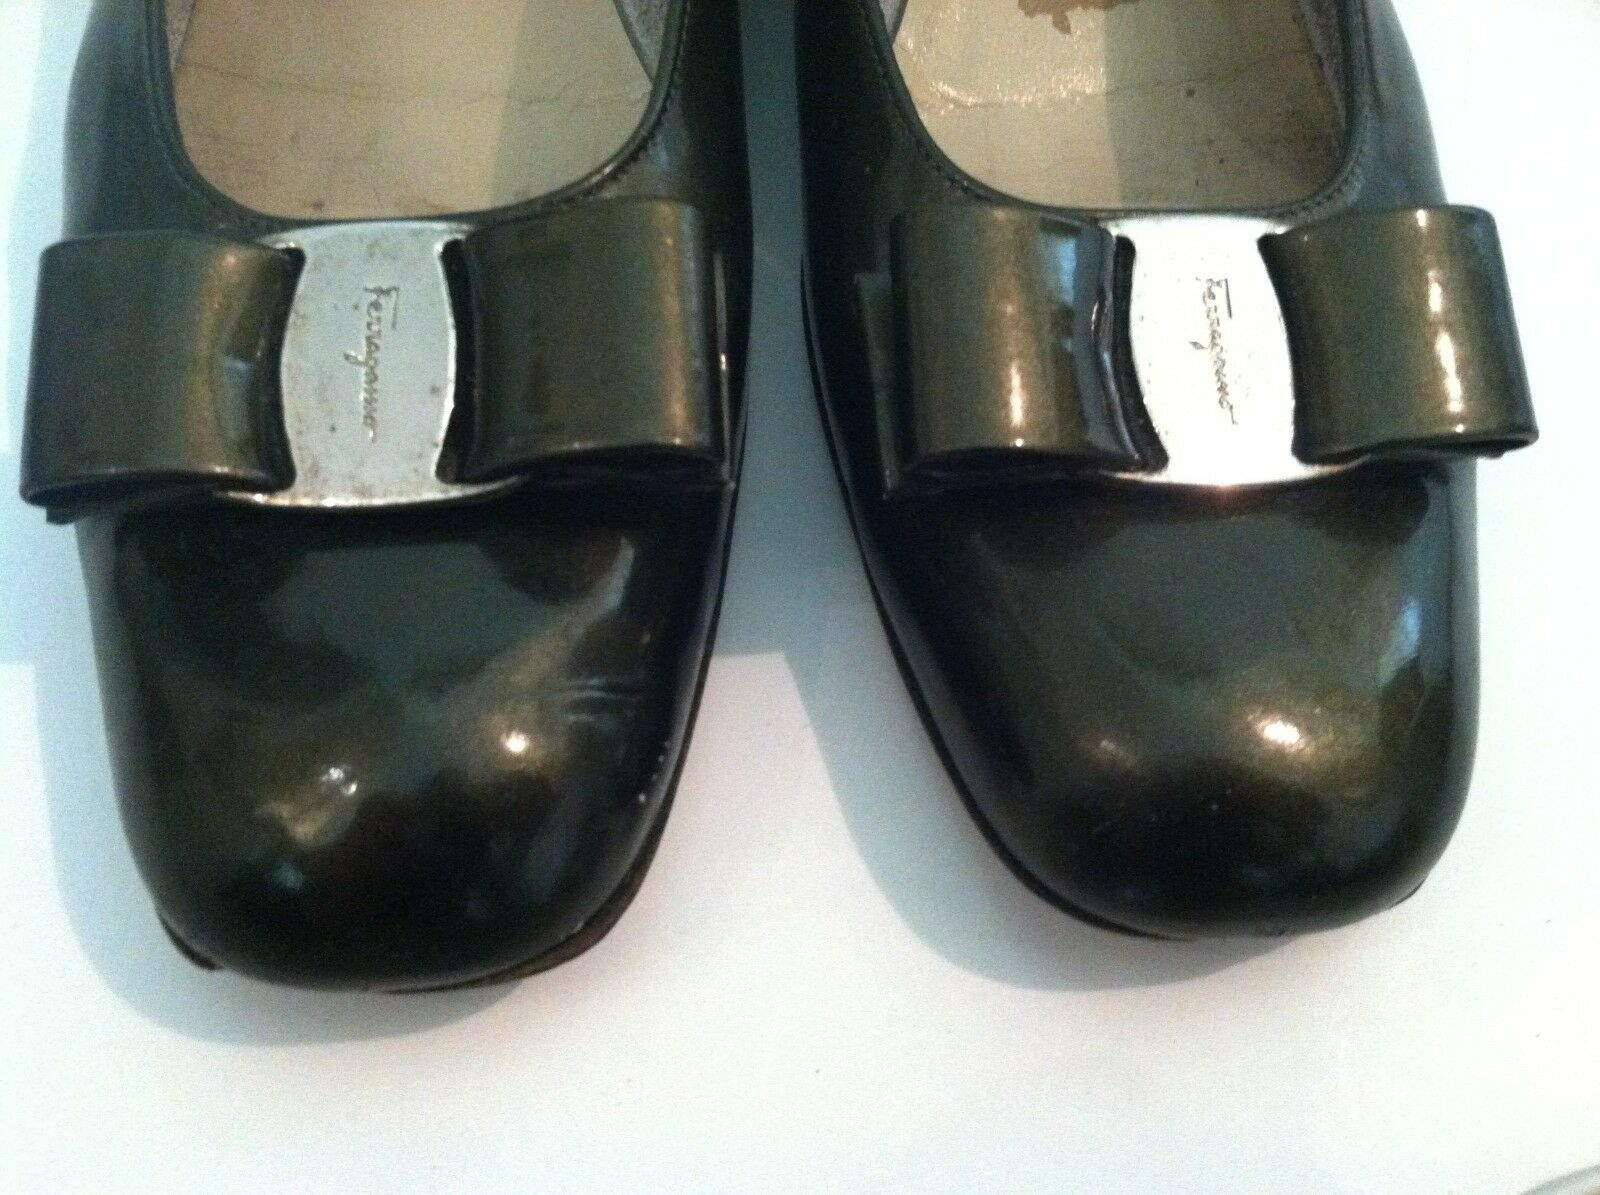 Ferragamo 10 AAA green patent Leder flat Vara low heel slip on Vara flat bow rare color bb00af